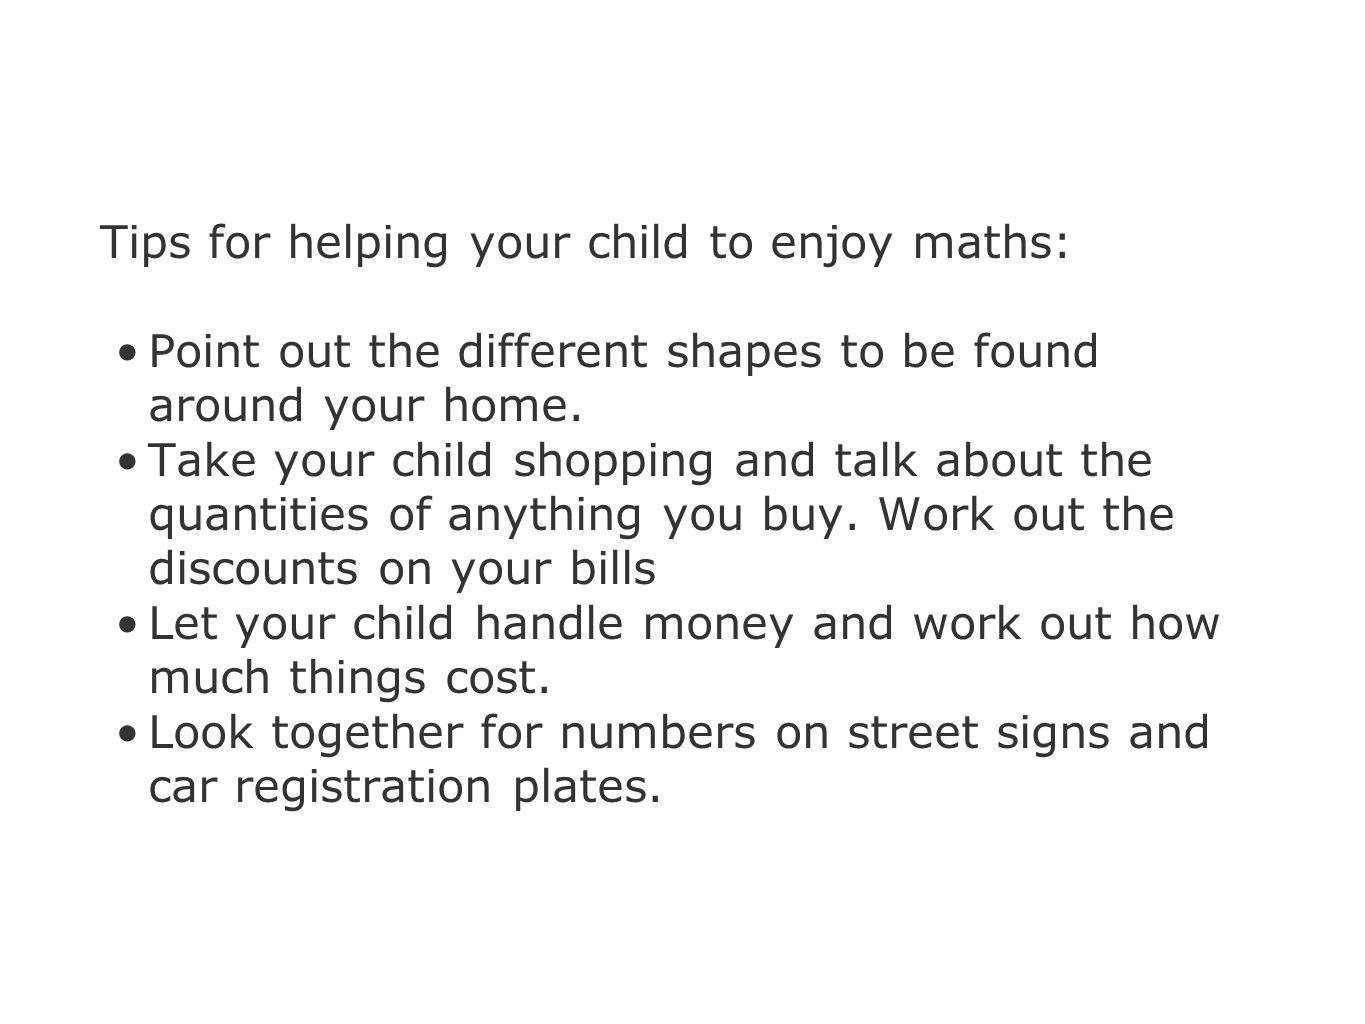 Tips for helping your child to enjoy maths: Point out the different shapes to be found around your home.